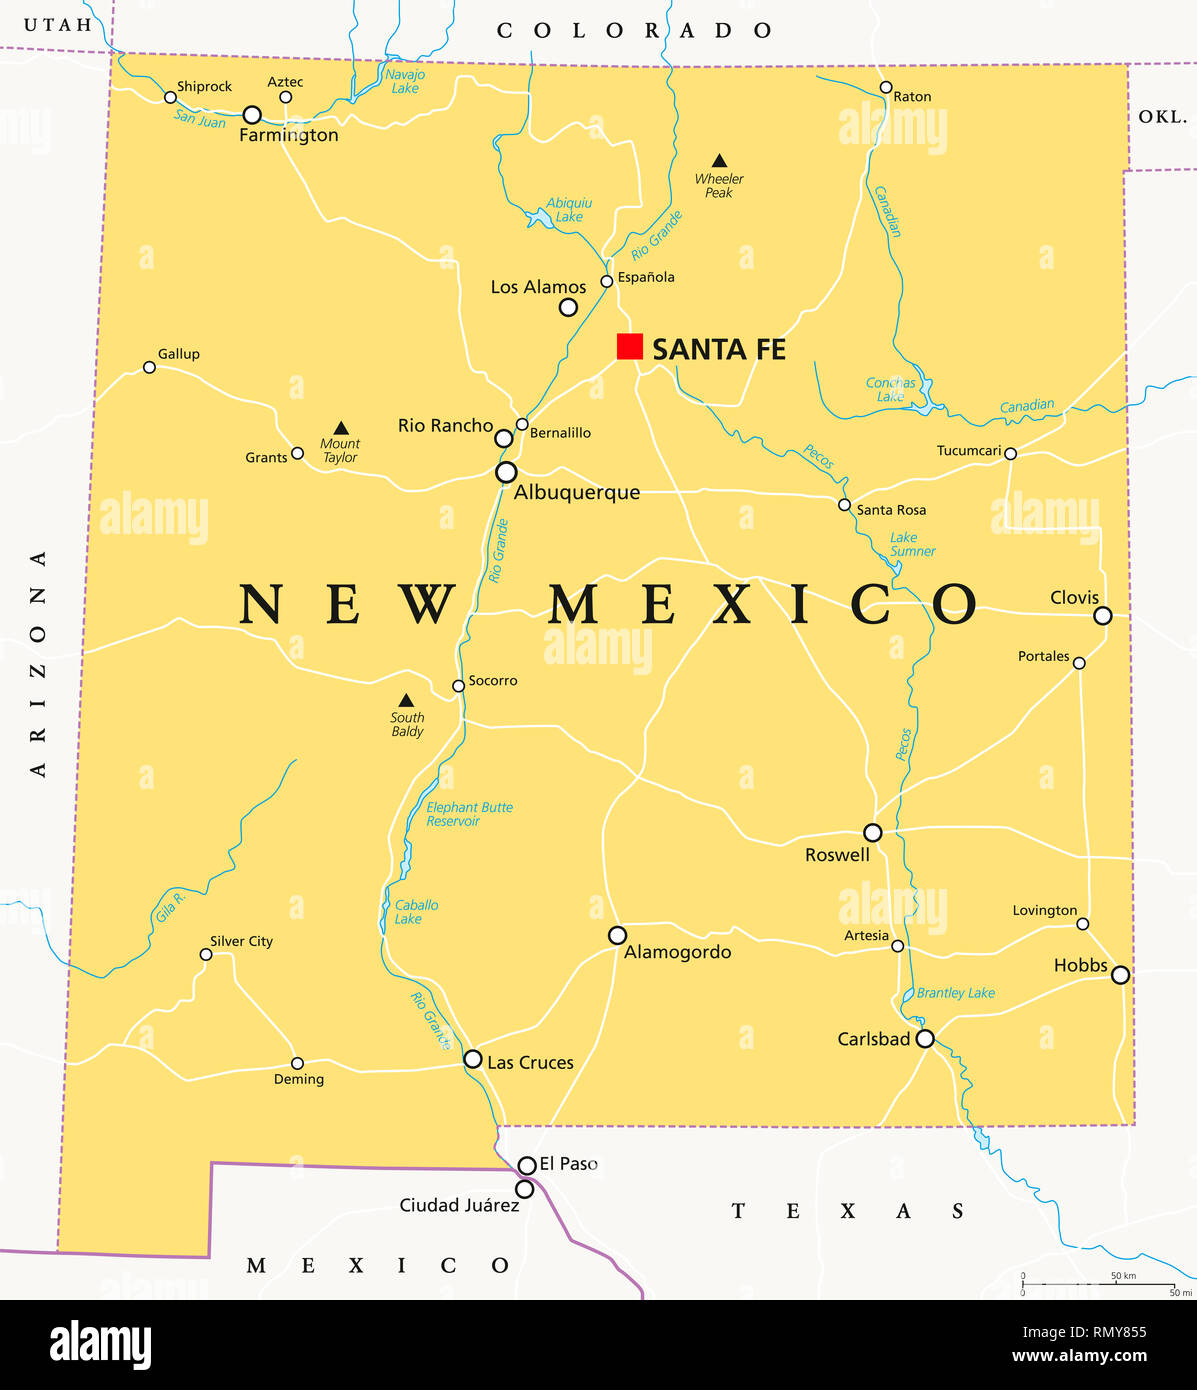 New Mexico Map Stockfotos & New Mexico Map Bilder - Alamy